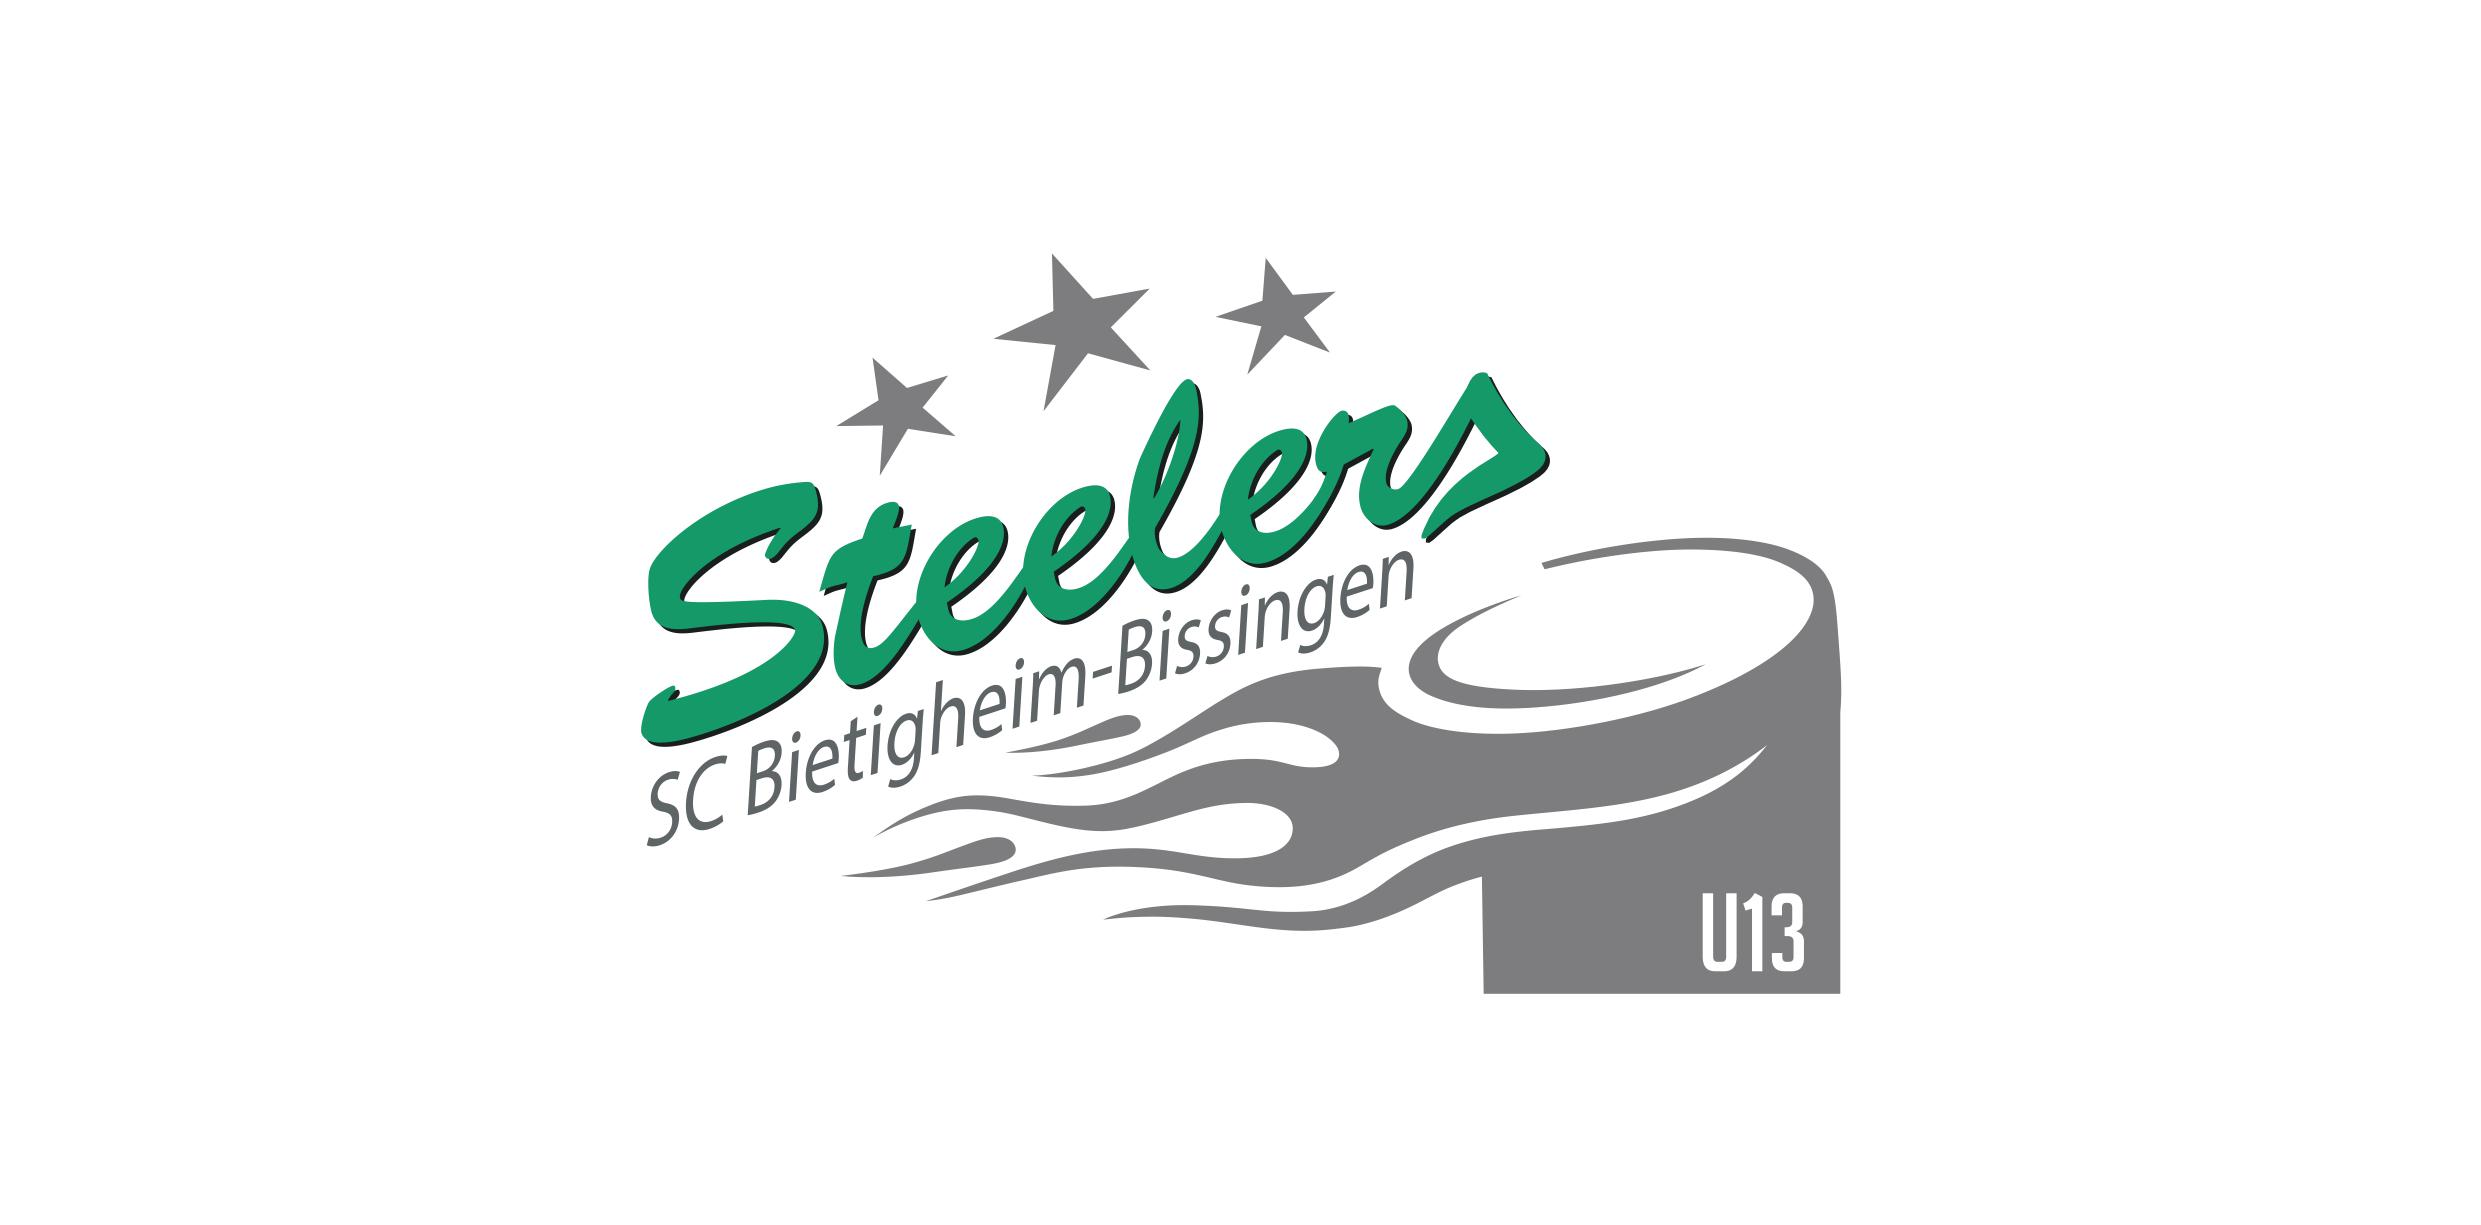 Start der Steelers U13 in die Saison 2019/20 Bild